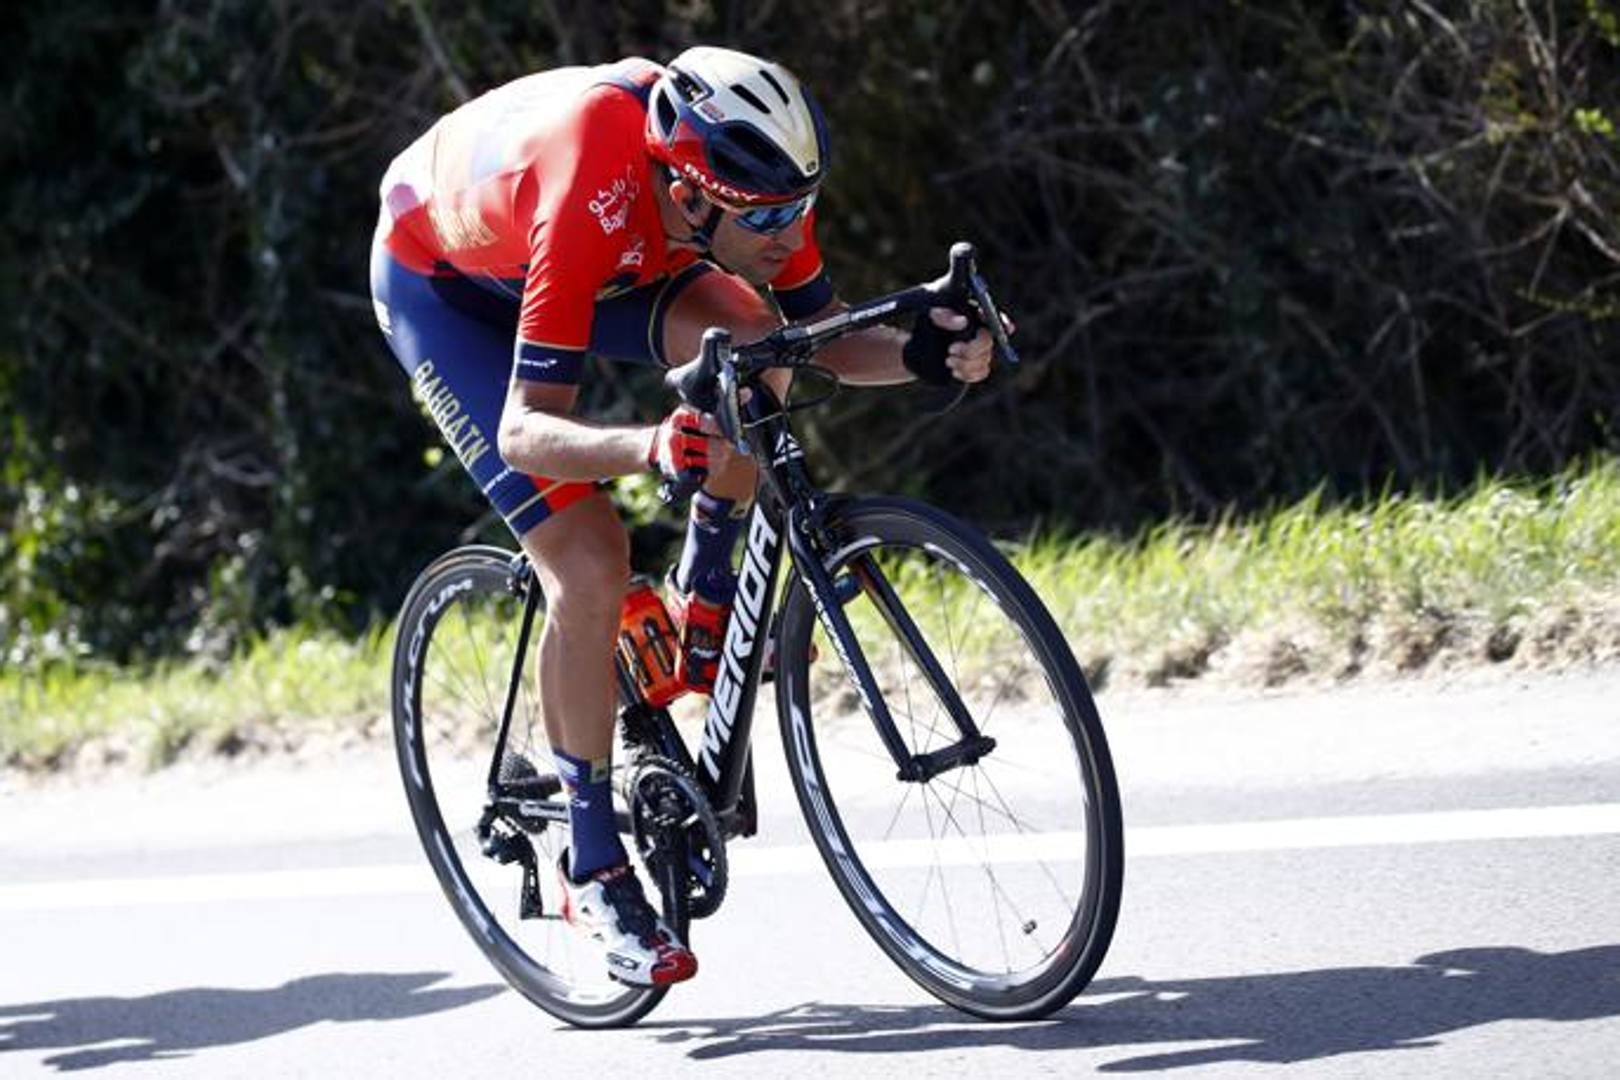 L'ultimo vincitore, Vincenzo Nibali. Bettini